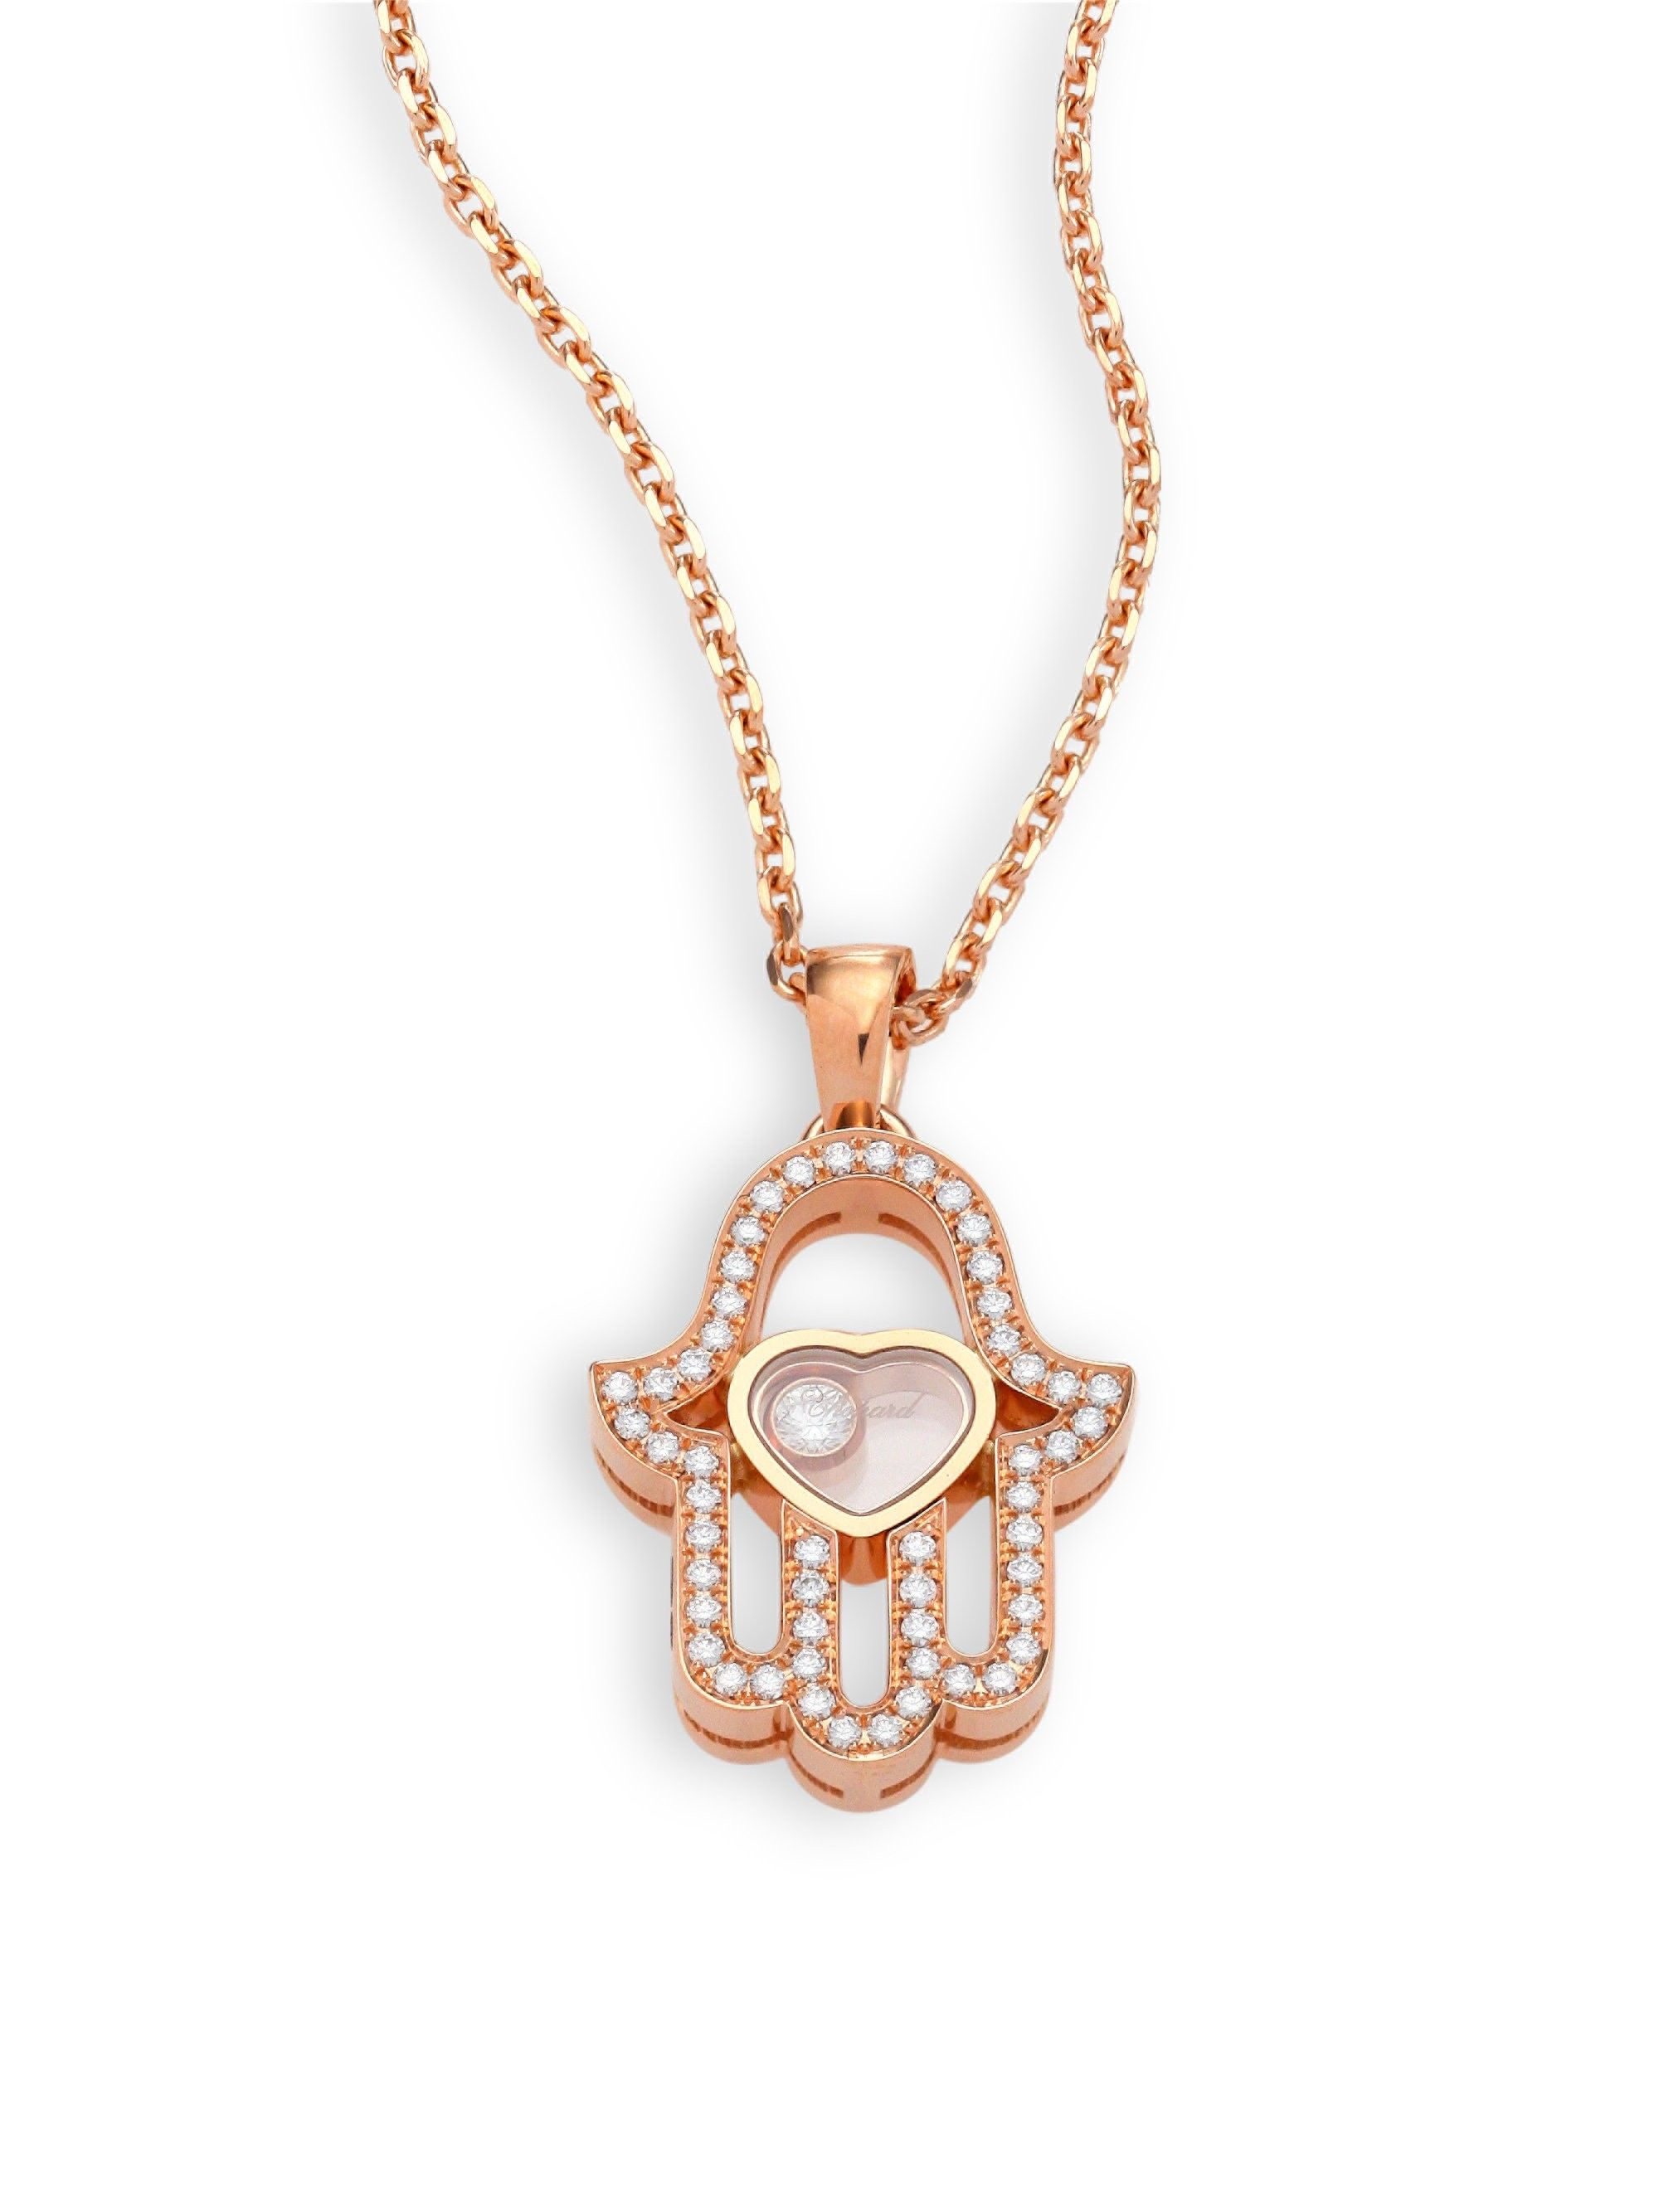 f17da9c3a Chopard Happy Diamonds Pave Hamsa Hand Diamond & 18K Rose Gold Pendant  Necklace - One Size